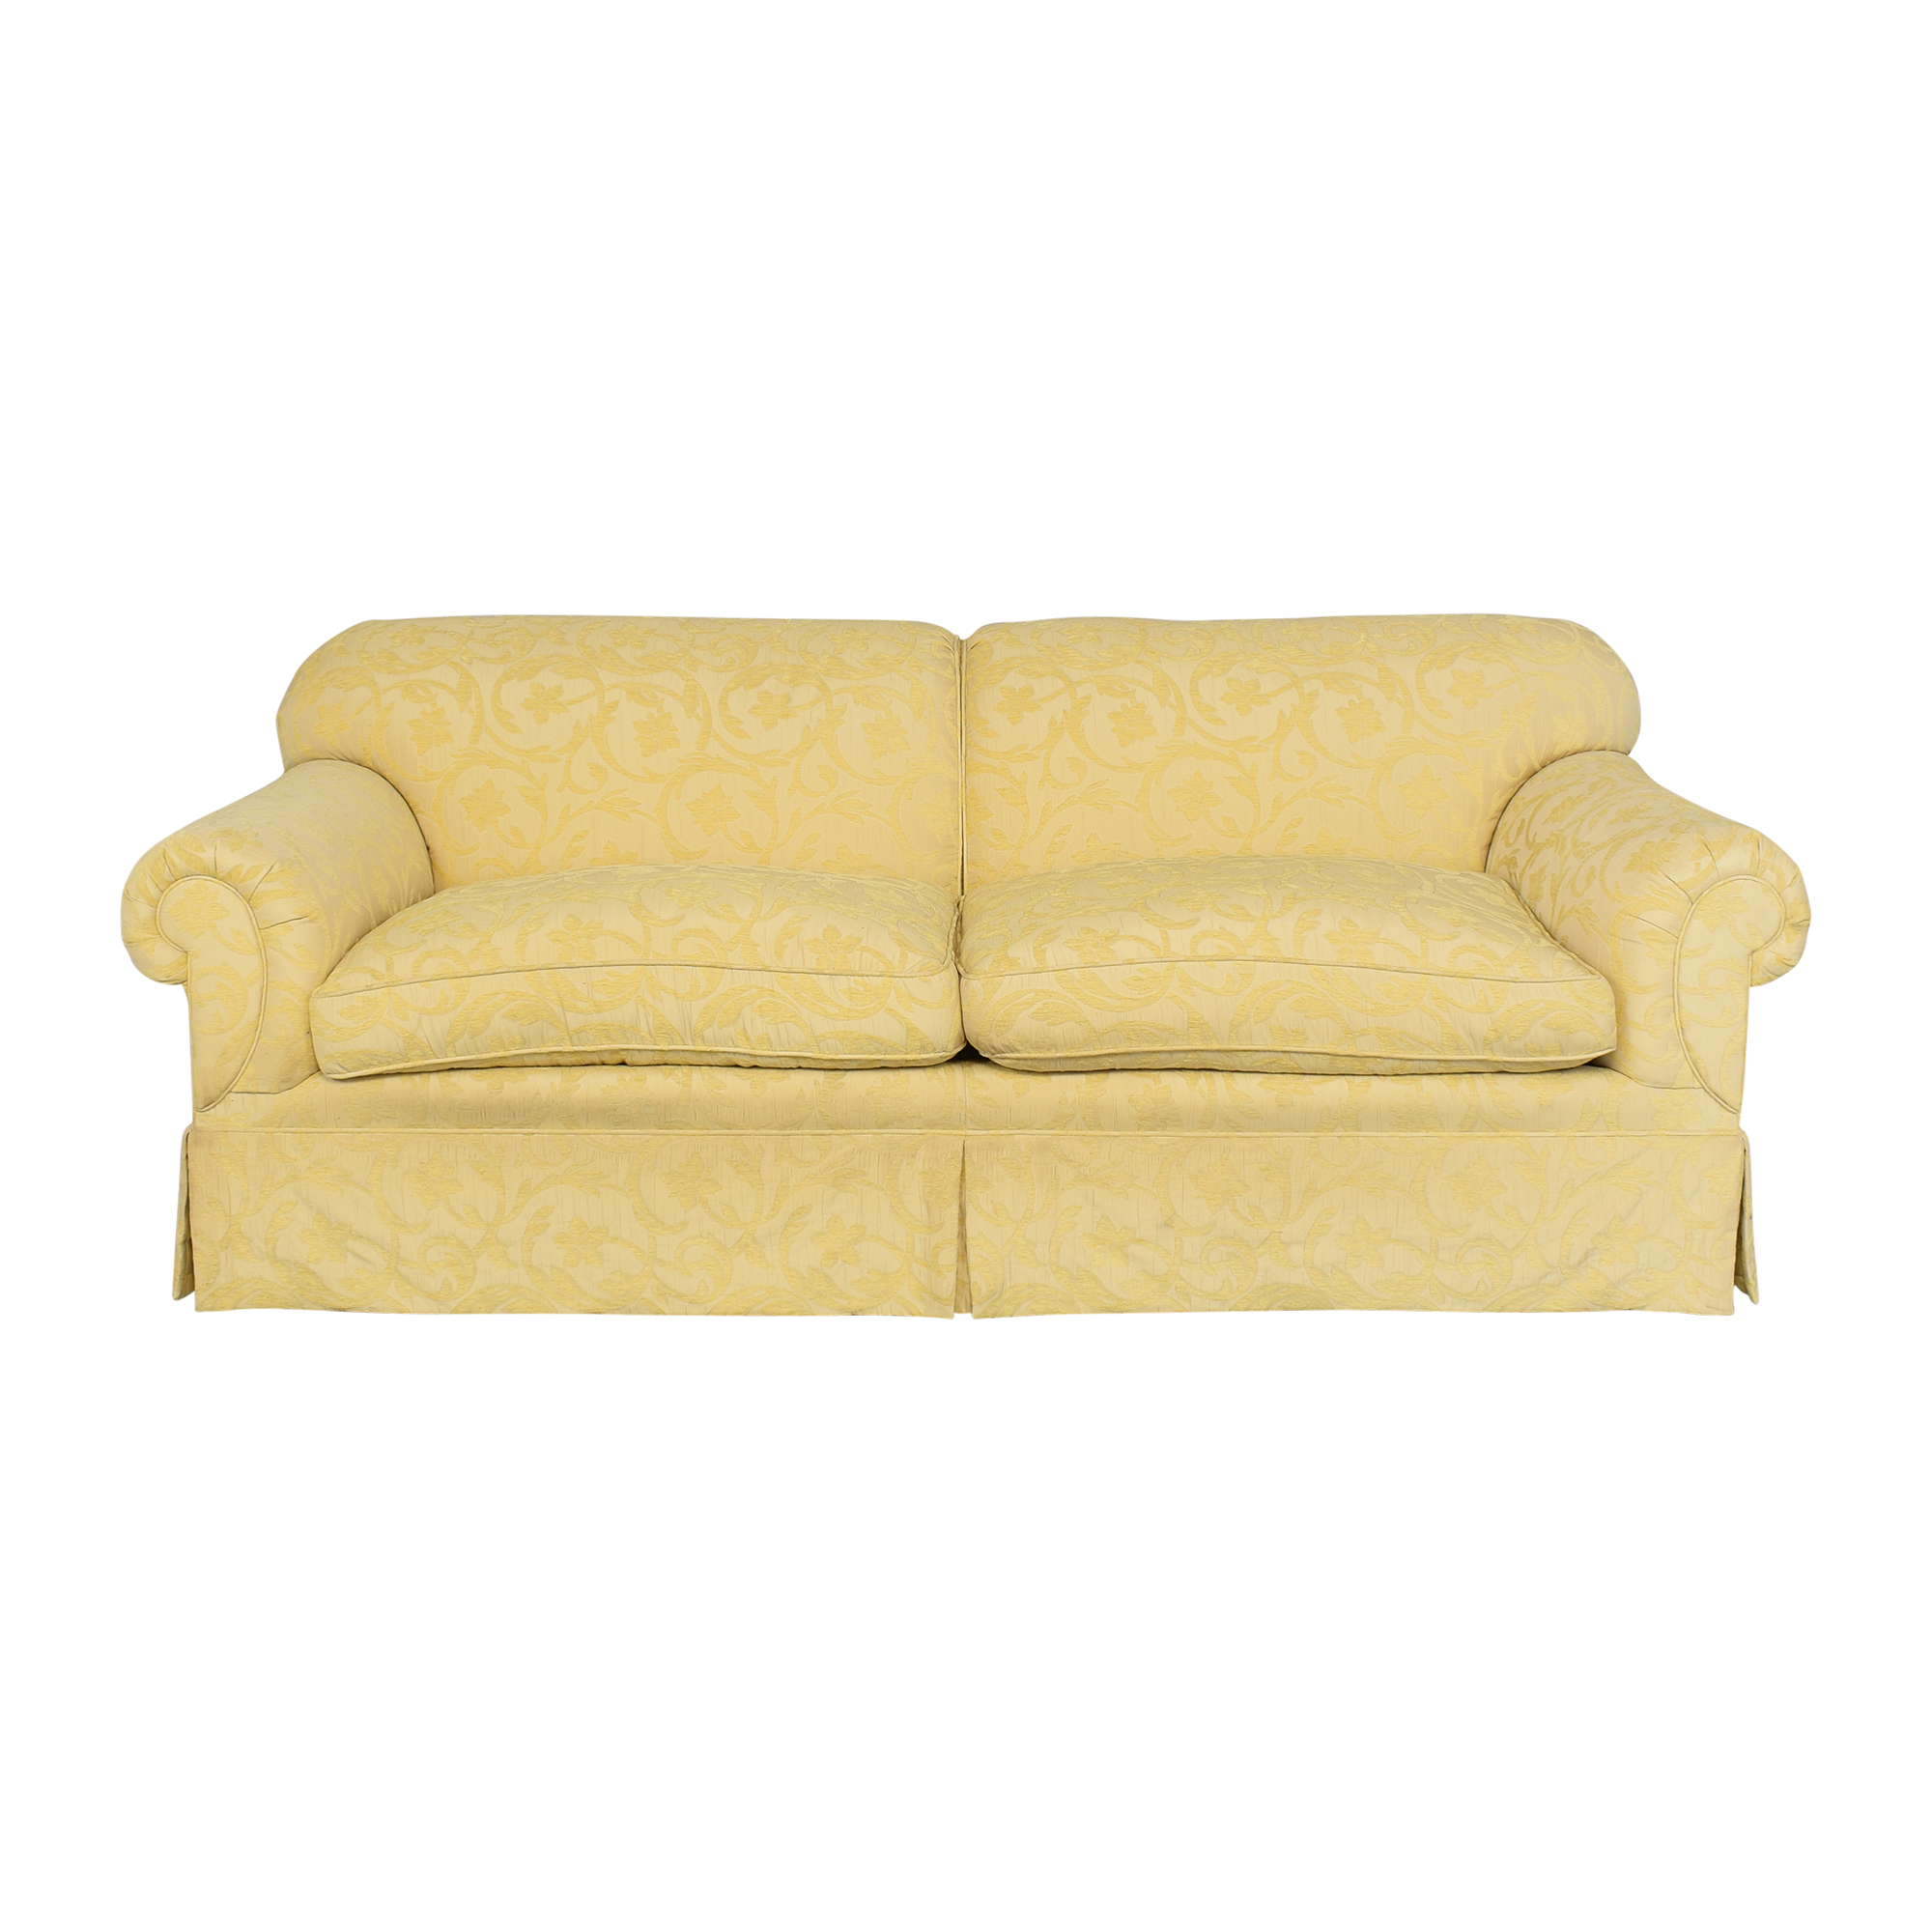 Lee Jofa Lee Jofa Two Cushion Sofa used